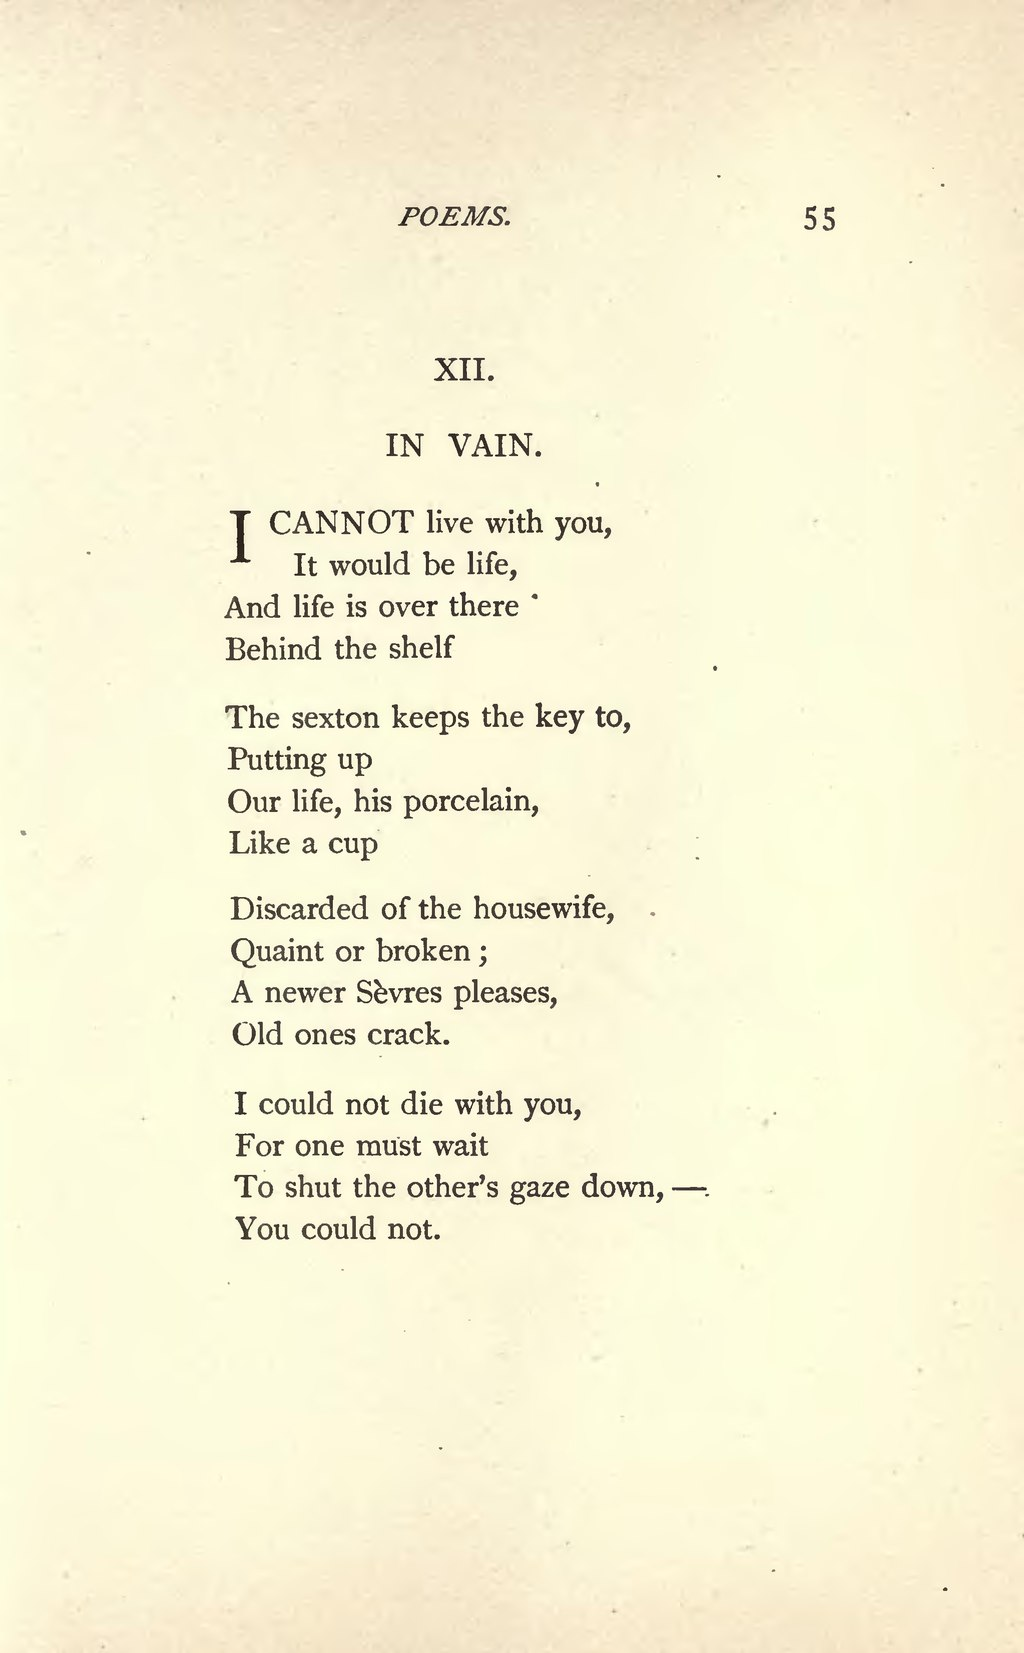 i cannot live with you poem